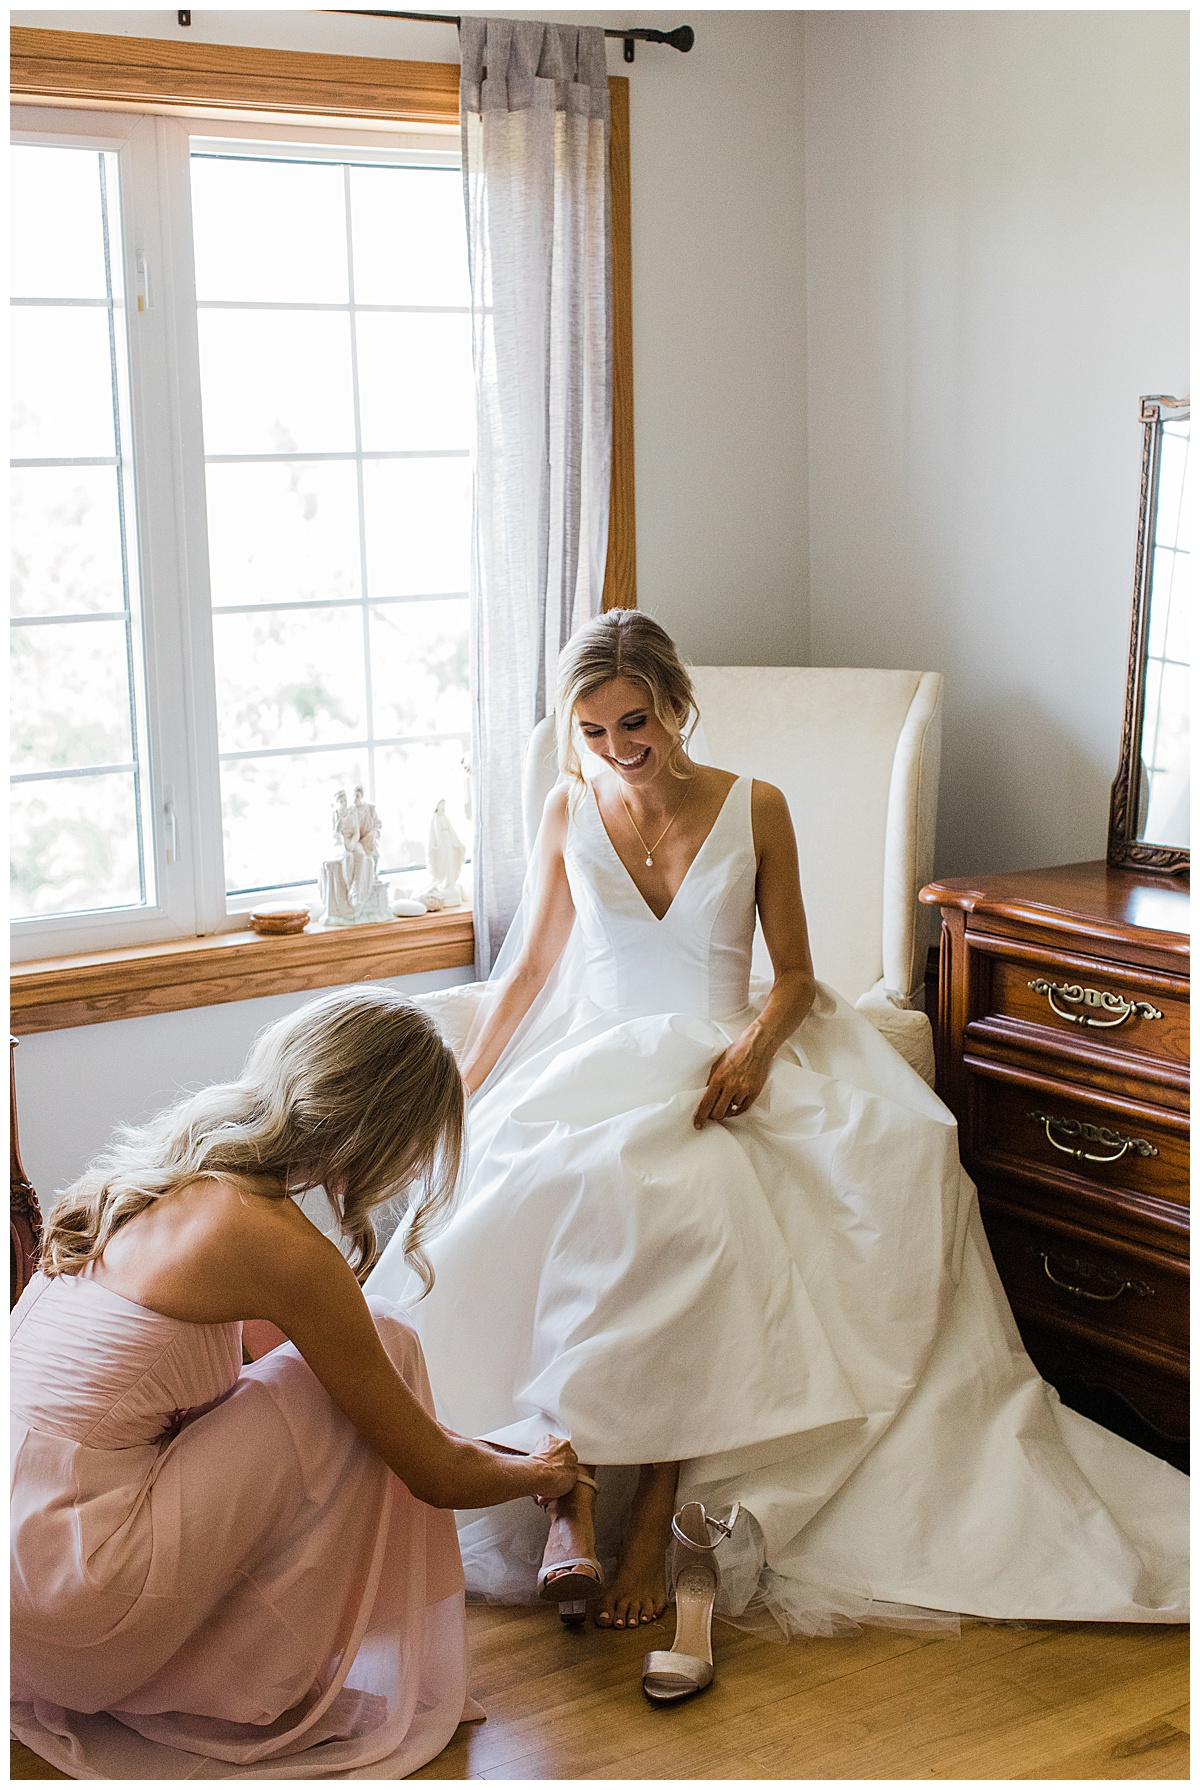 Bride sitting in chair by window while bridesmaid helps her put her bridal heels on| Georgetown, Ontario wedding| Toronto wedding photographer| 3photography